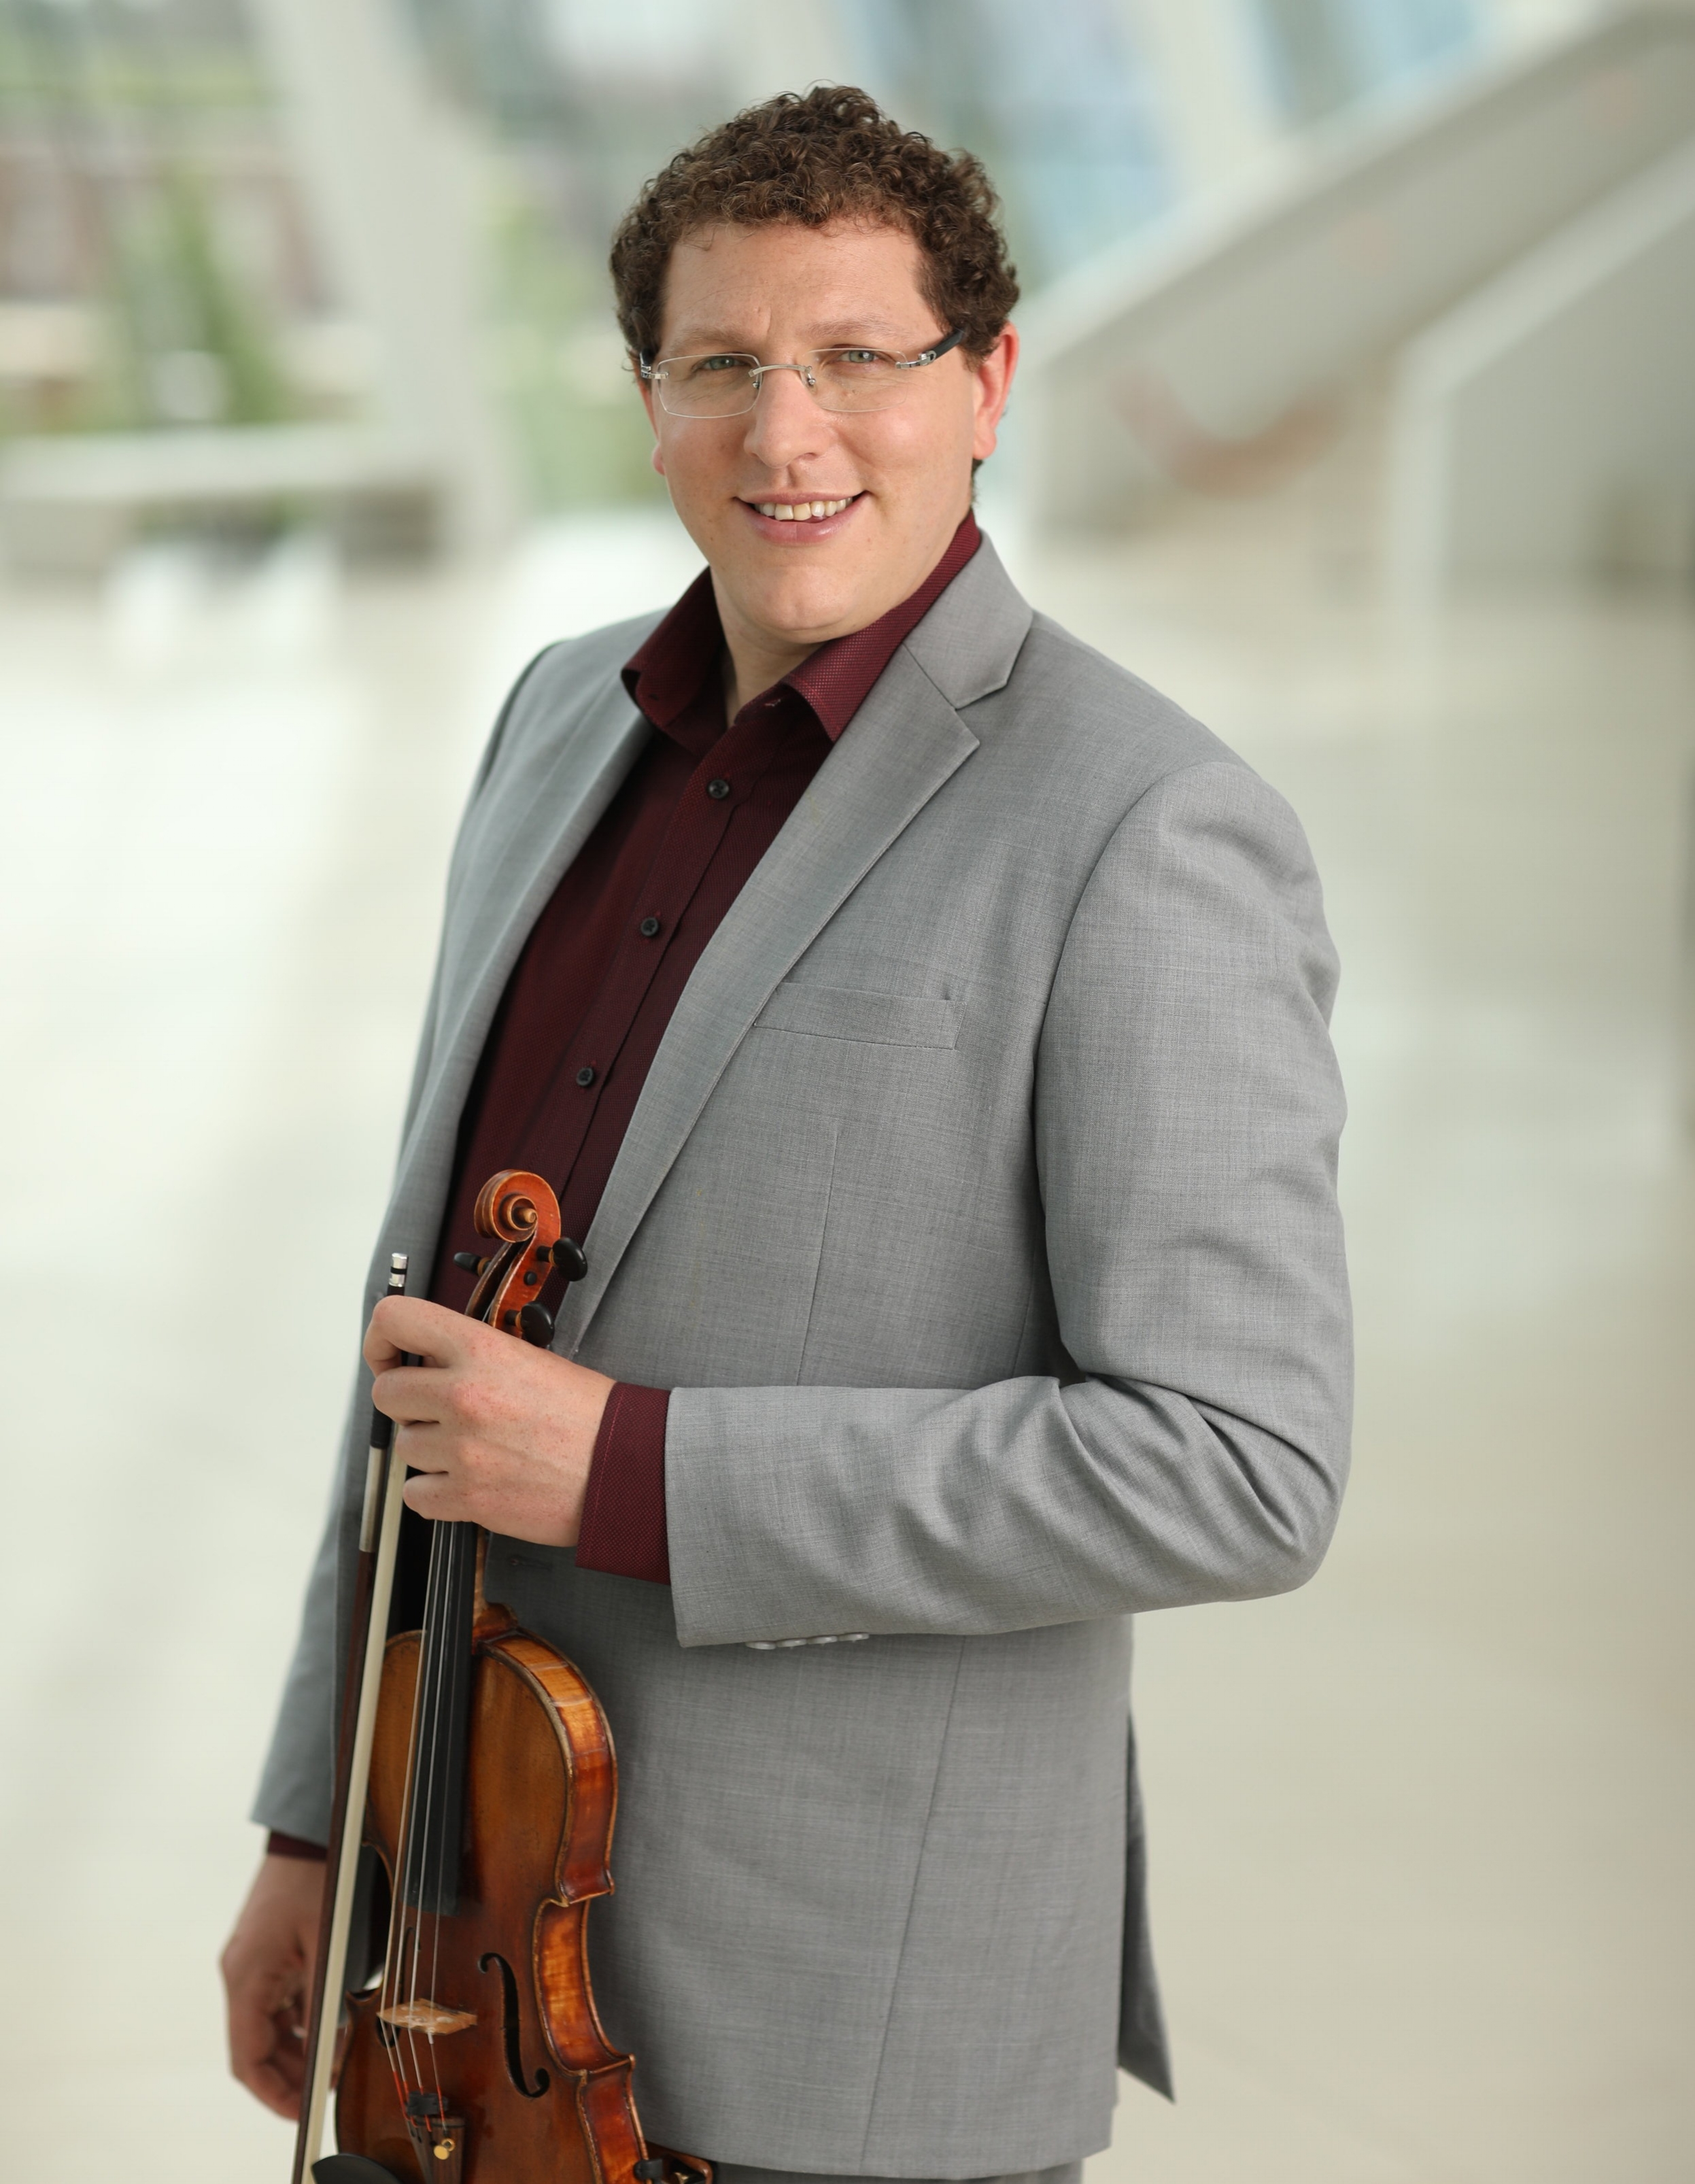 The David & Amy Fulton Concertmaster